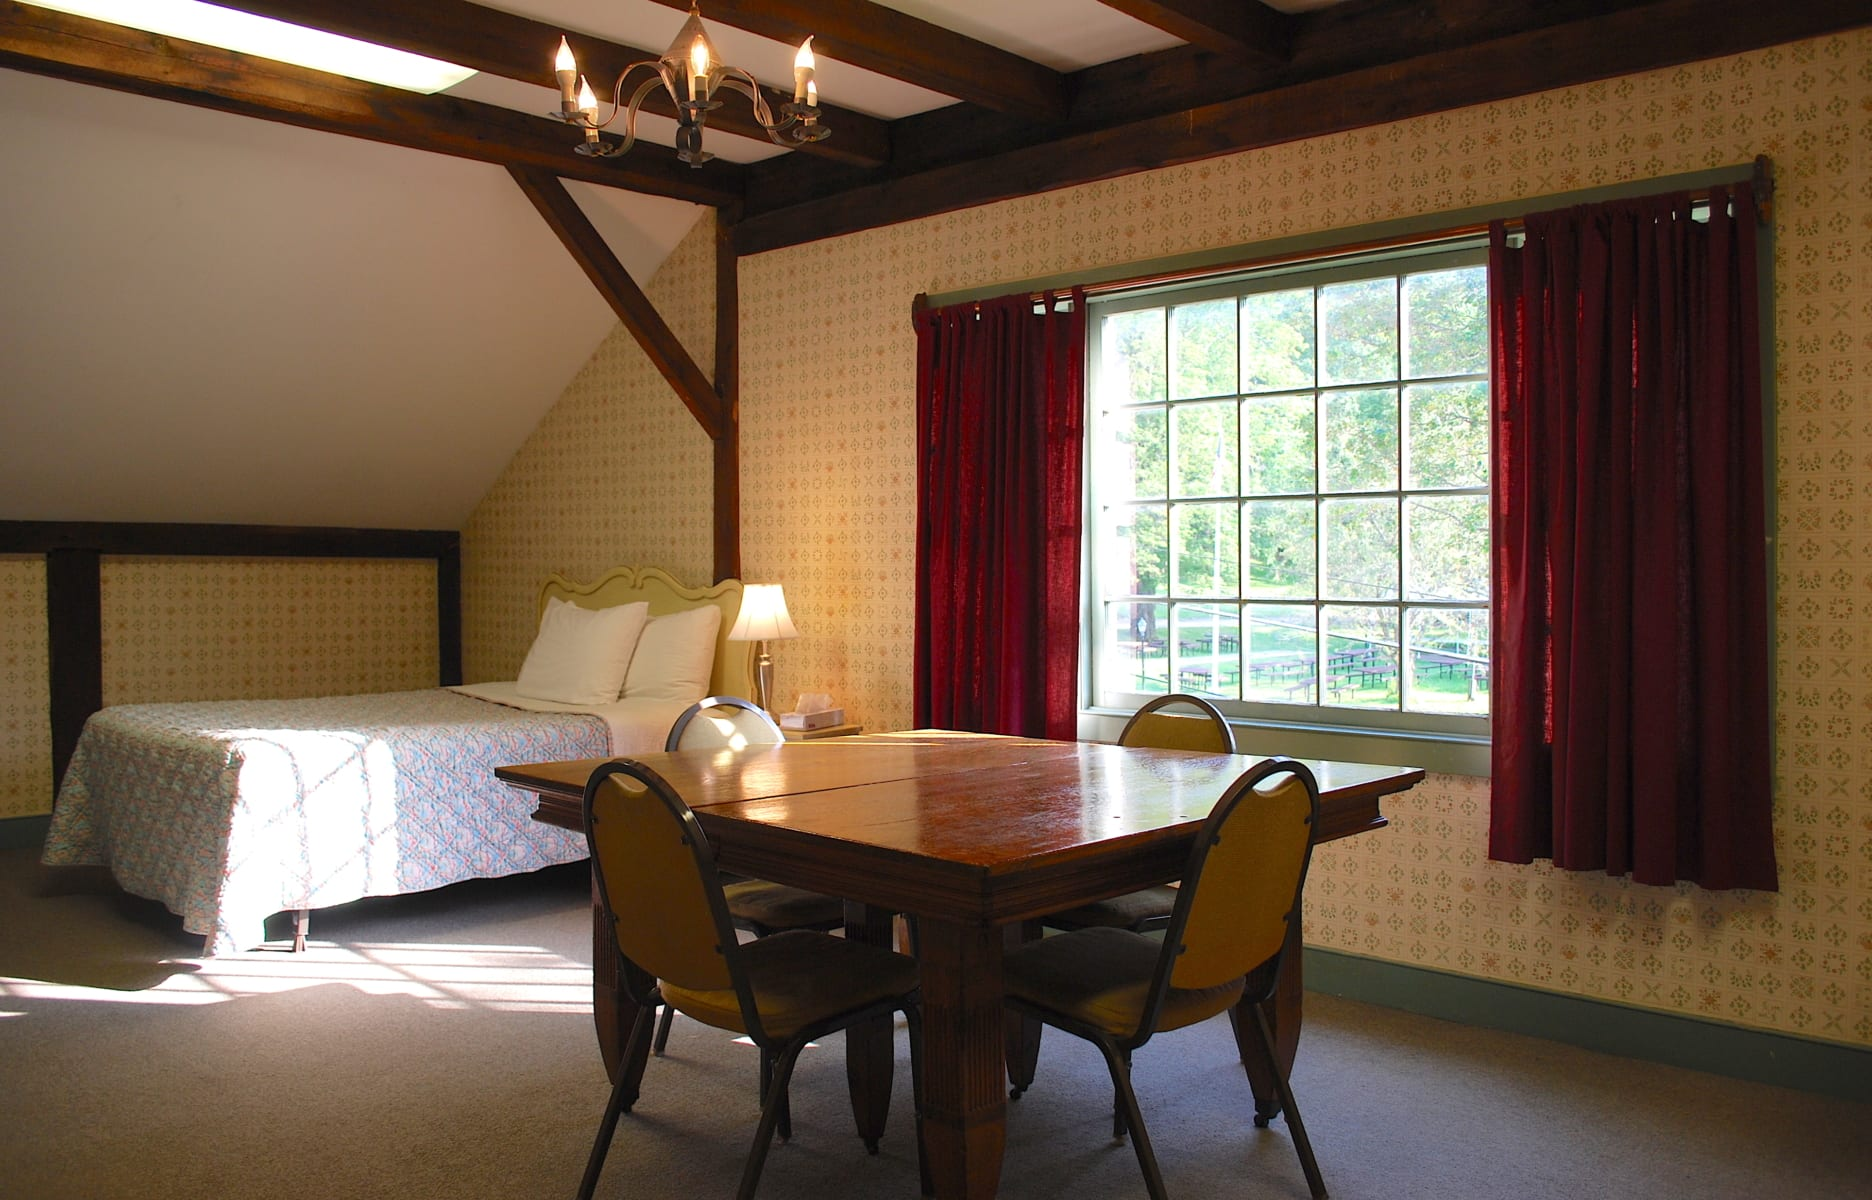 Hotel bedroom with bed, large table and windows.